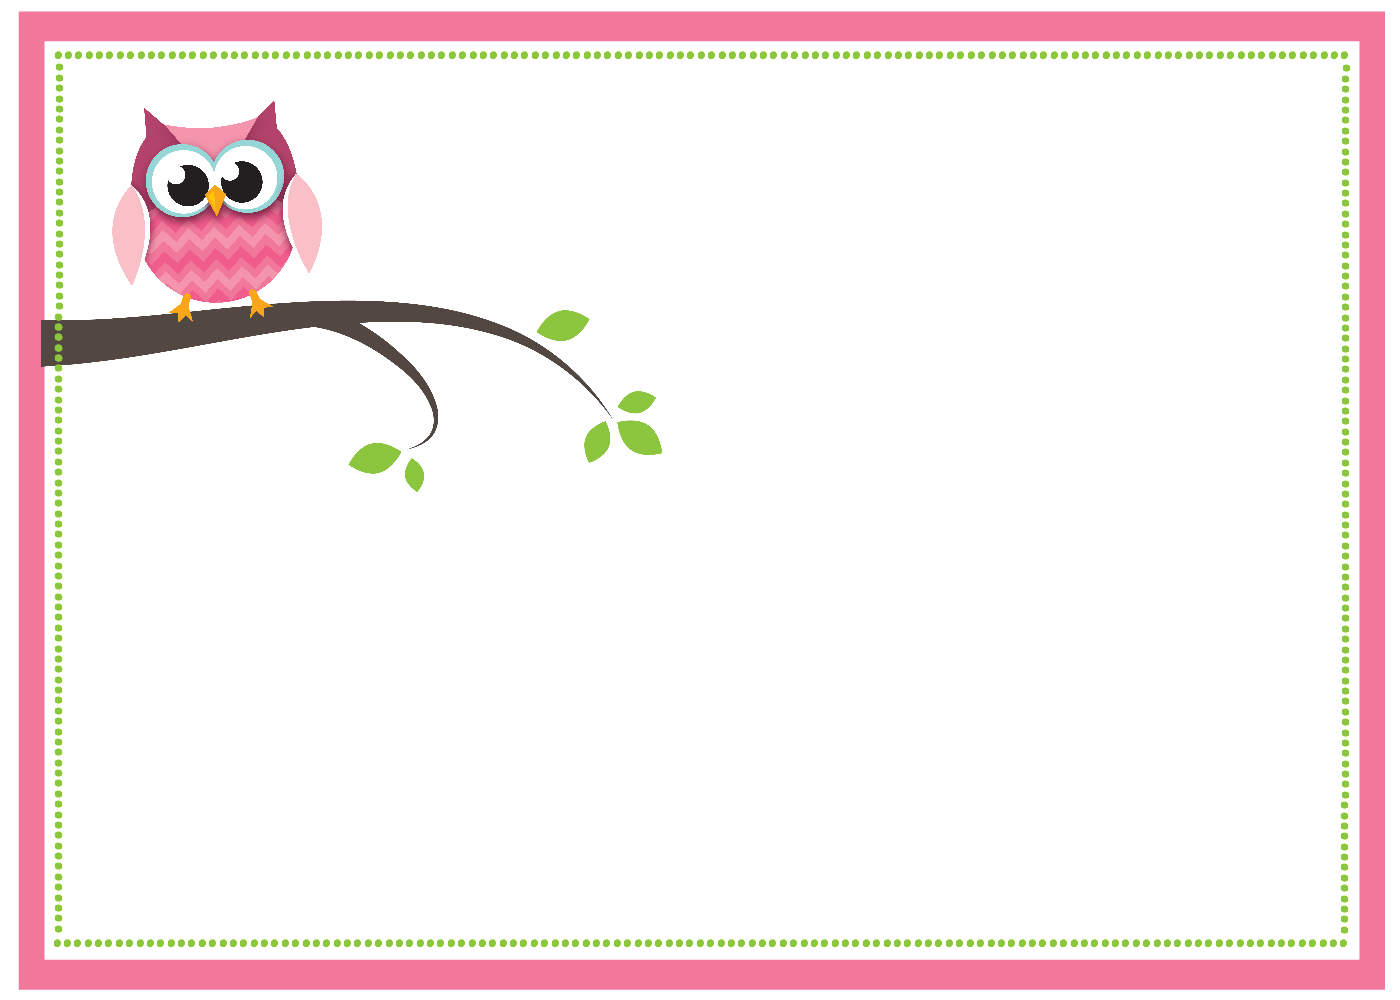 Baby Shower Invitations With Owl Theme is awesome invitation sample